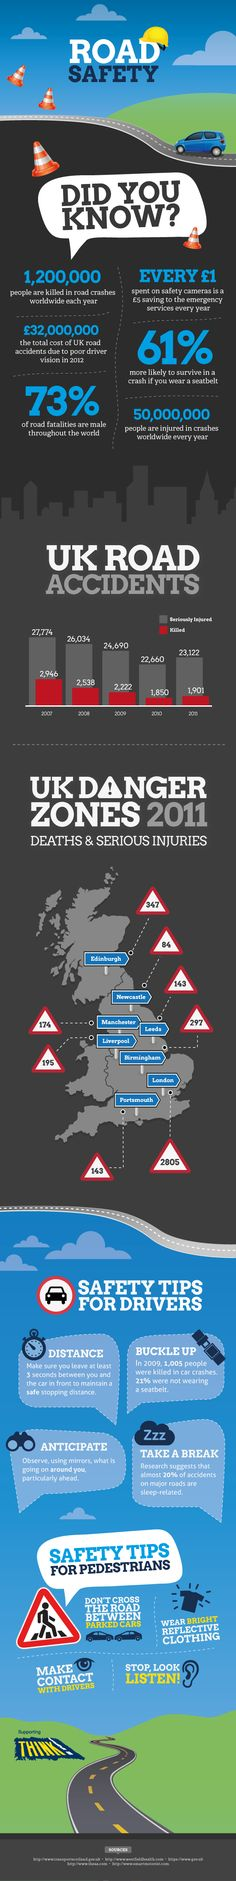 UK road safety infographic 1